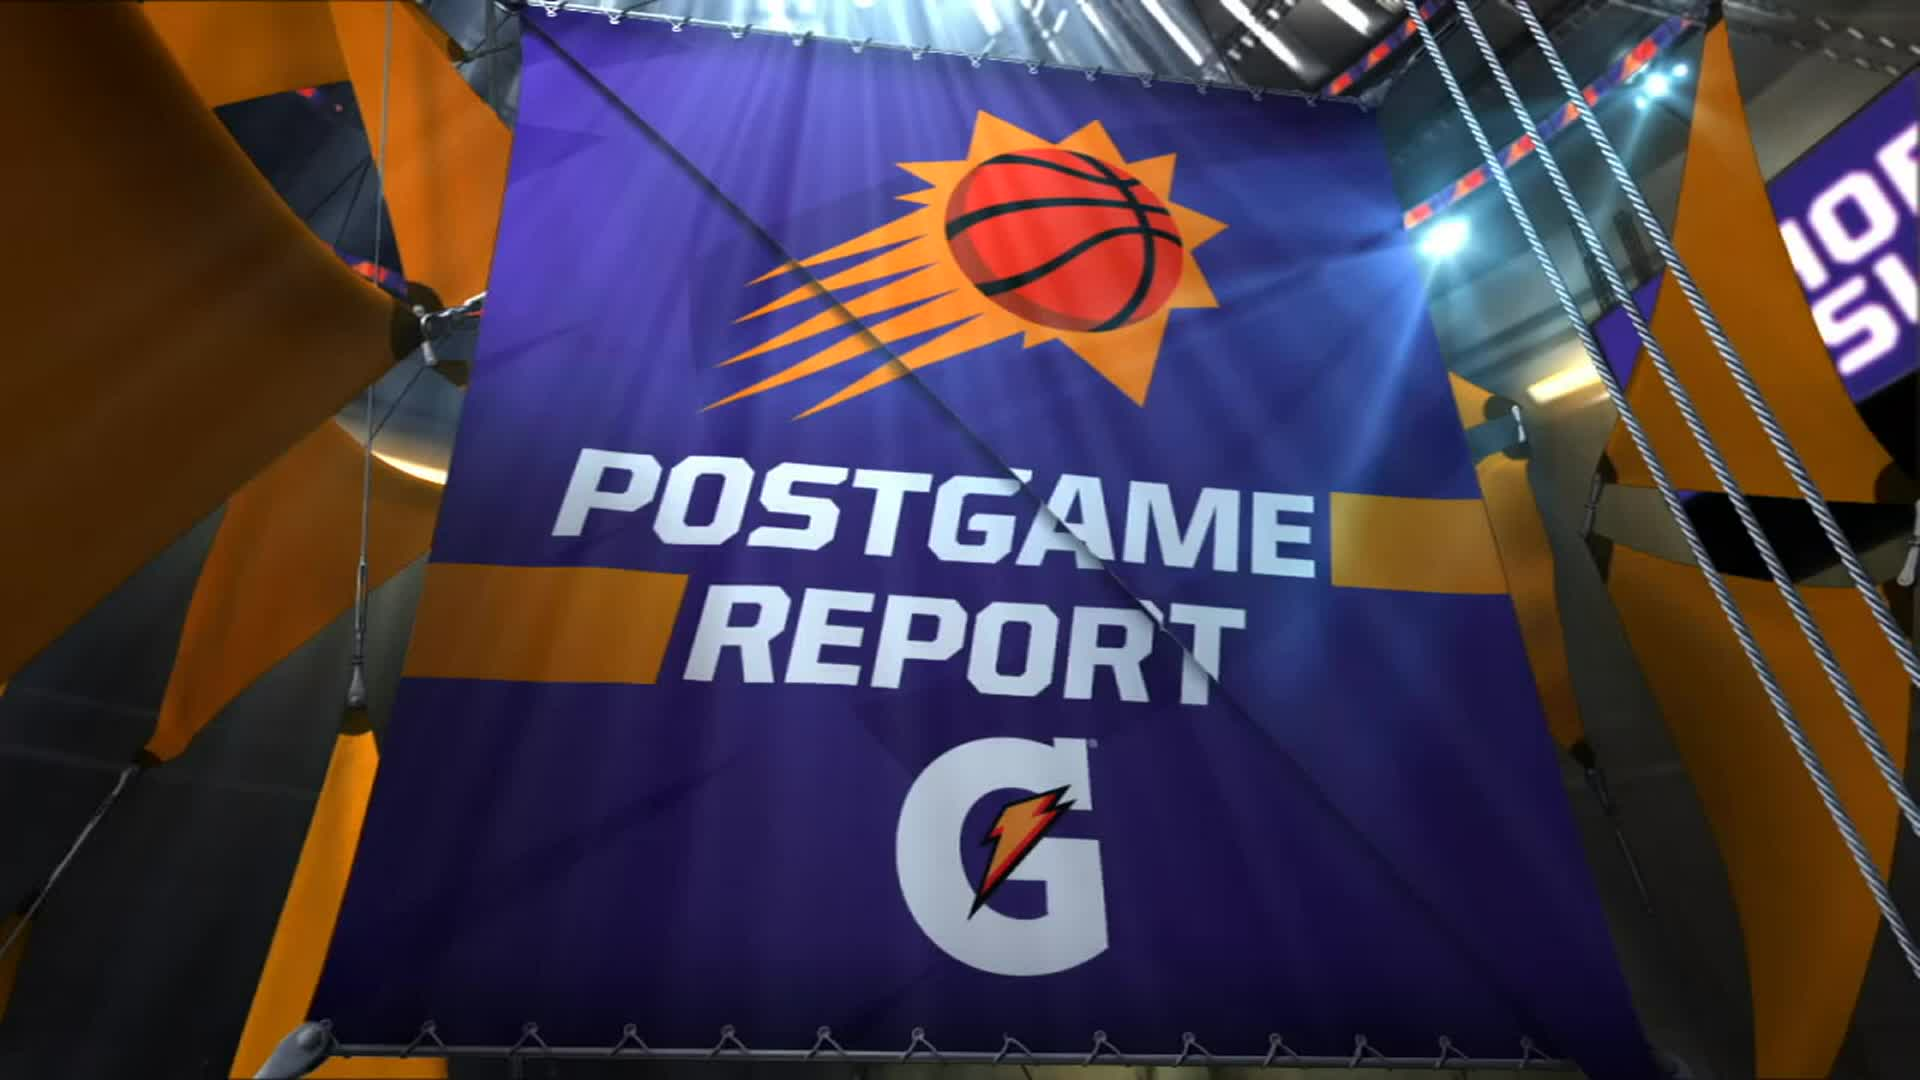 Gatorade Postgame Report: Suns vs. Knicks 2020-21